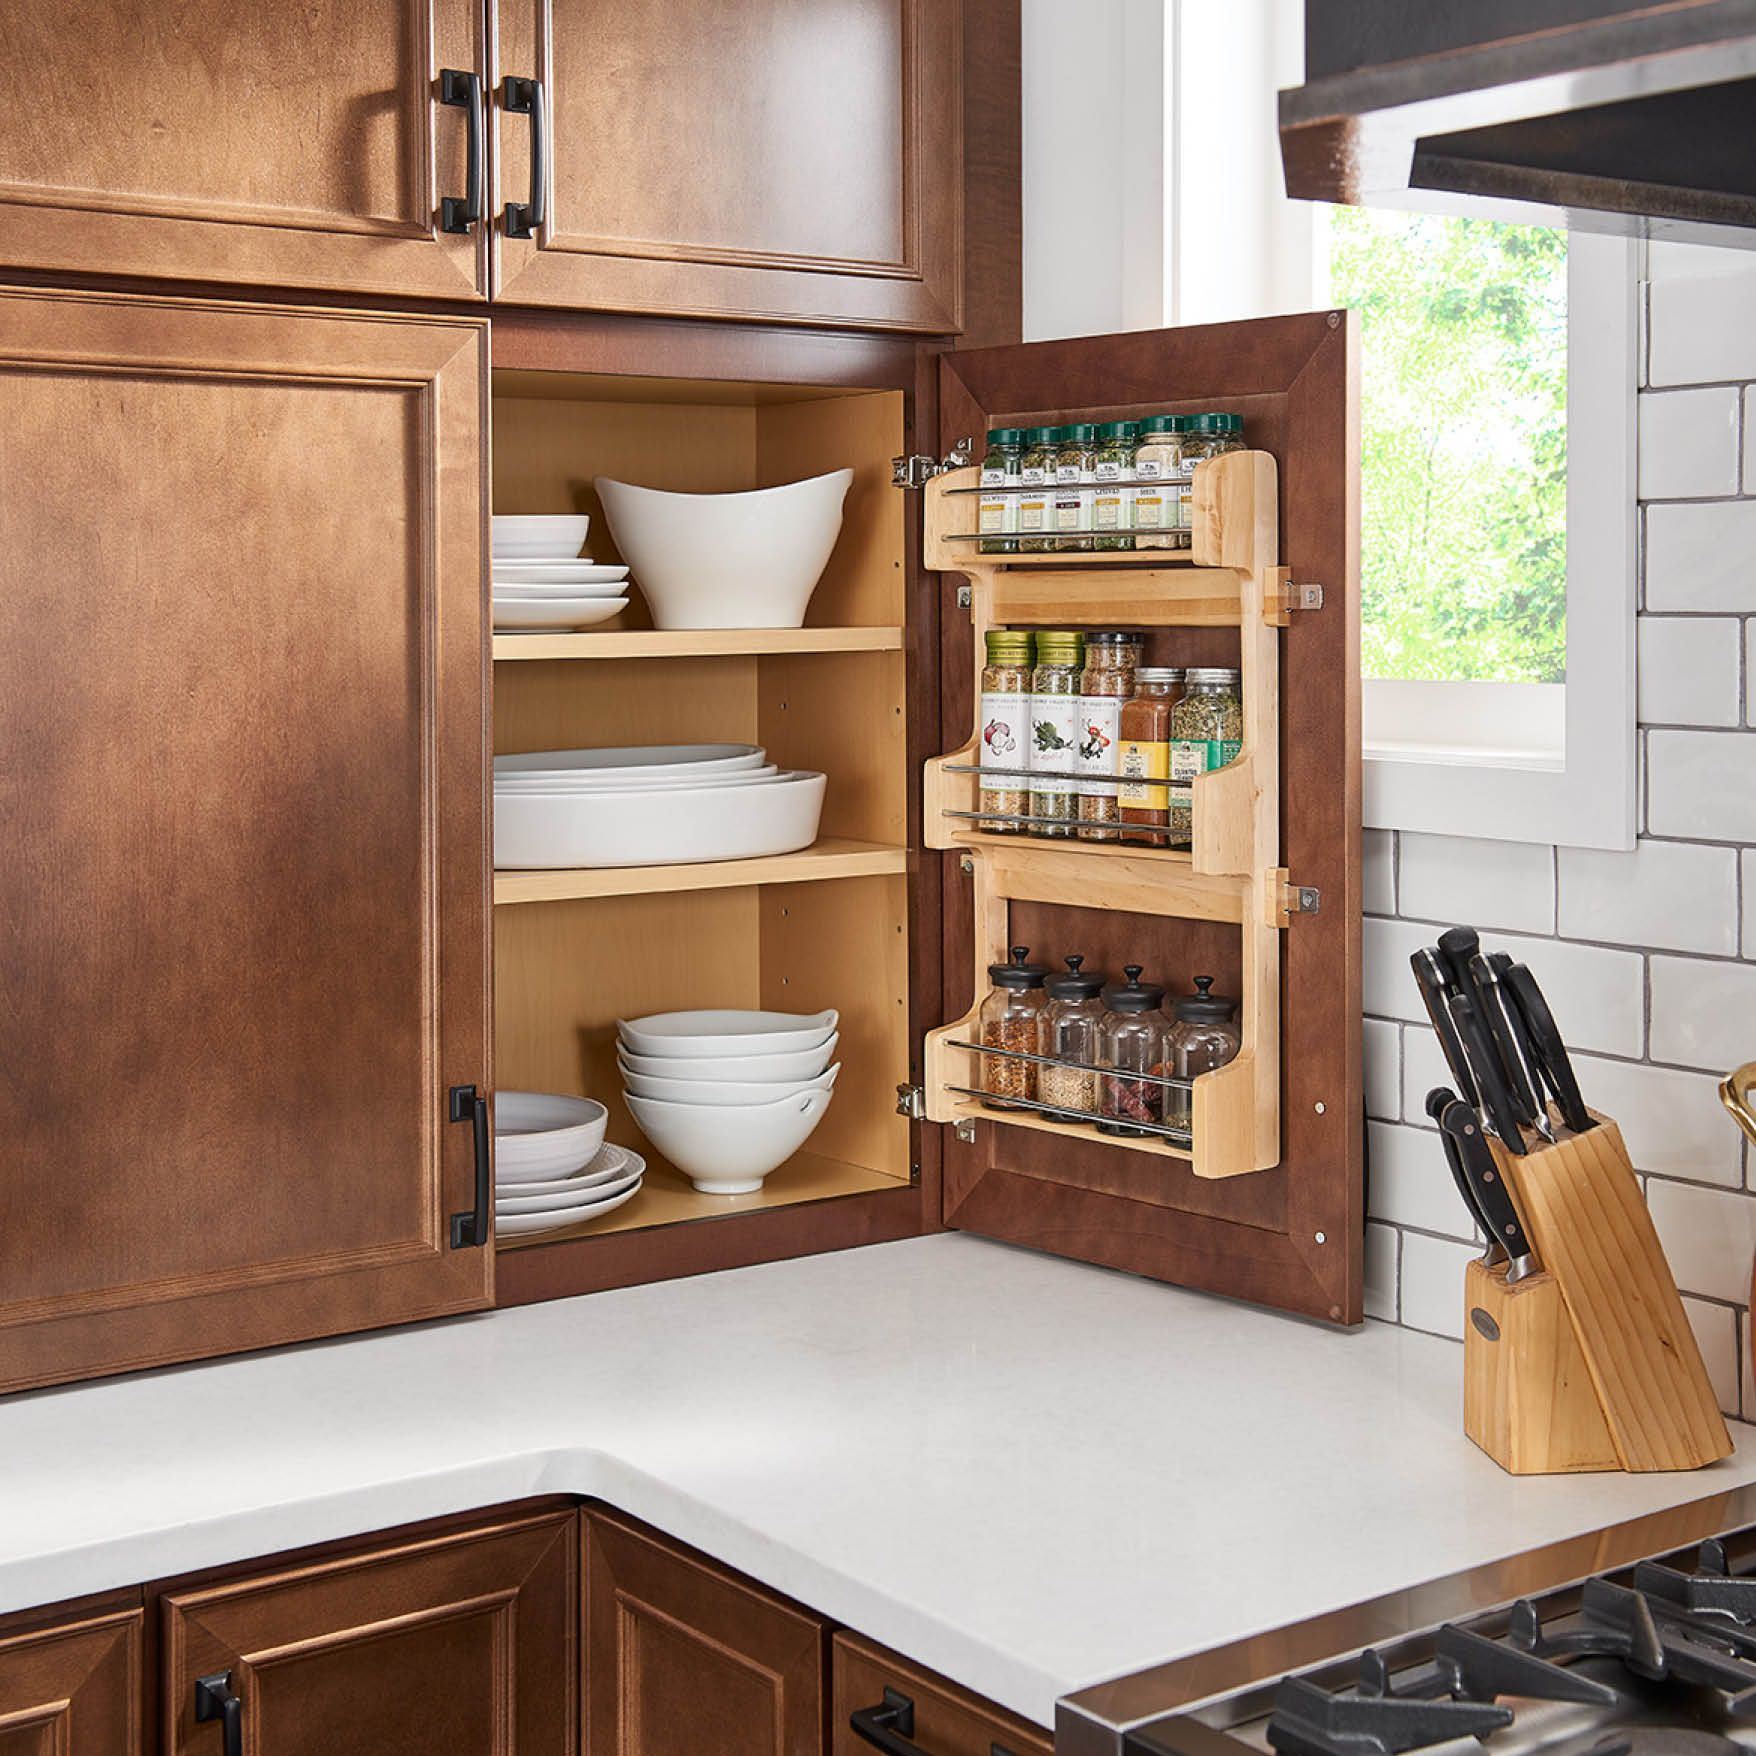 Hide The Secrets To Your Success Spices Shown In 540 Maple Truffle This Spice Rack Is An Essen Beautiful Kitchen Cabinets Cabinet Spice Rack Kitchen Cabinets